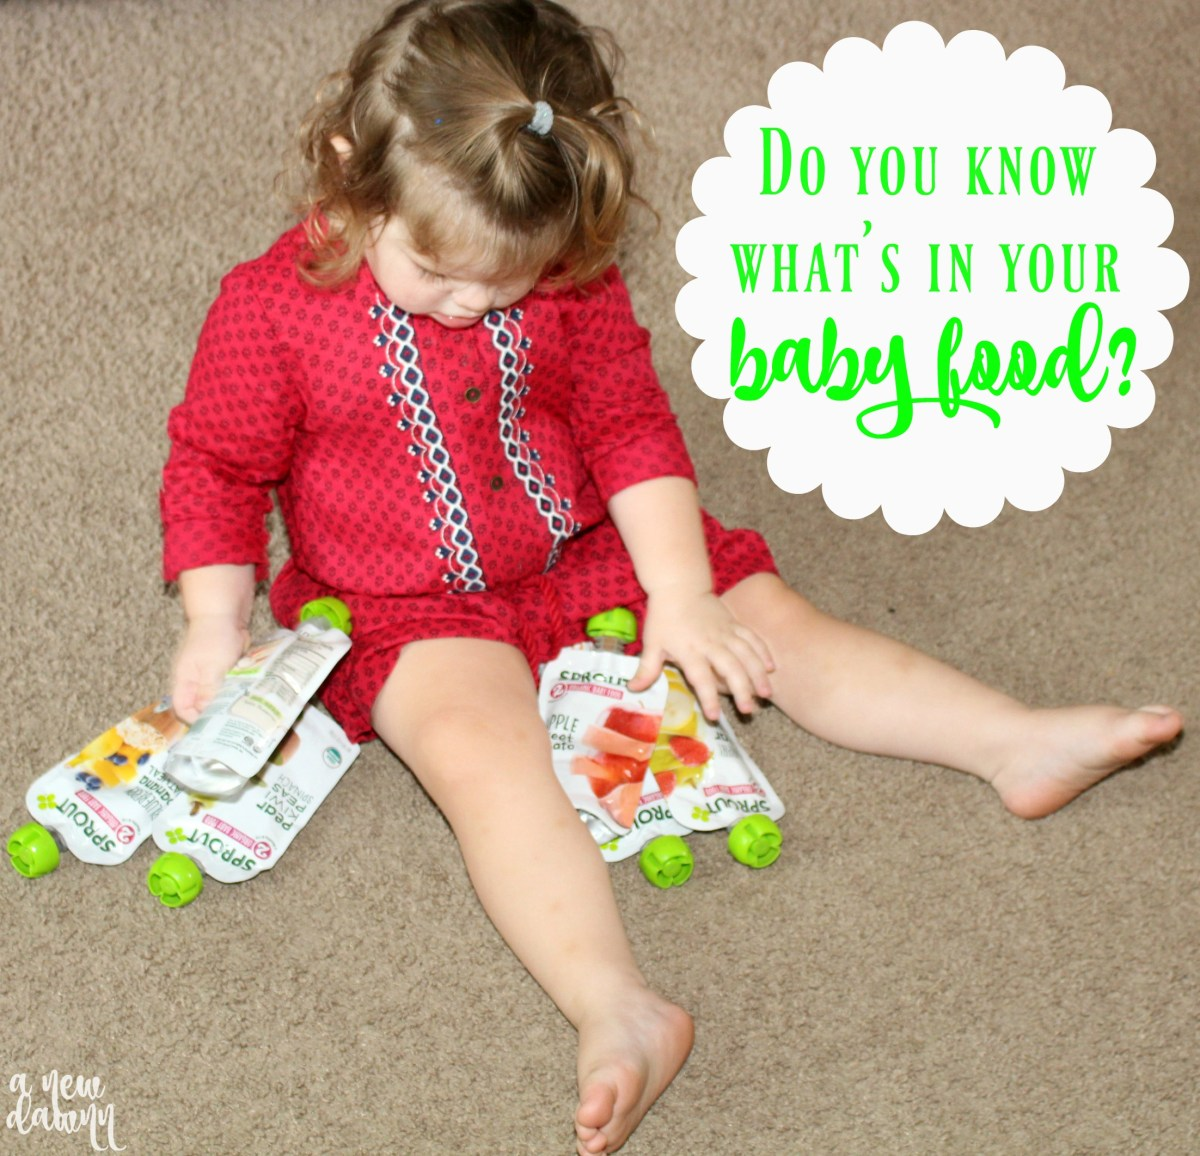 Do You REALLY Know What's In Your Baby Food?